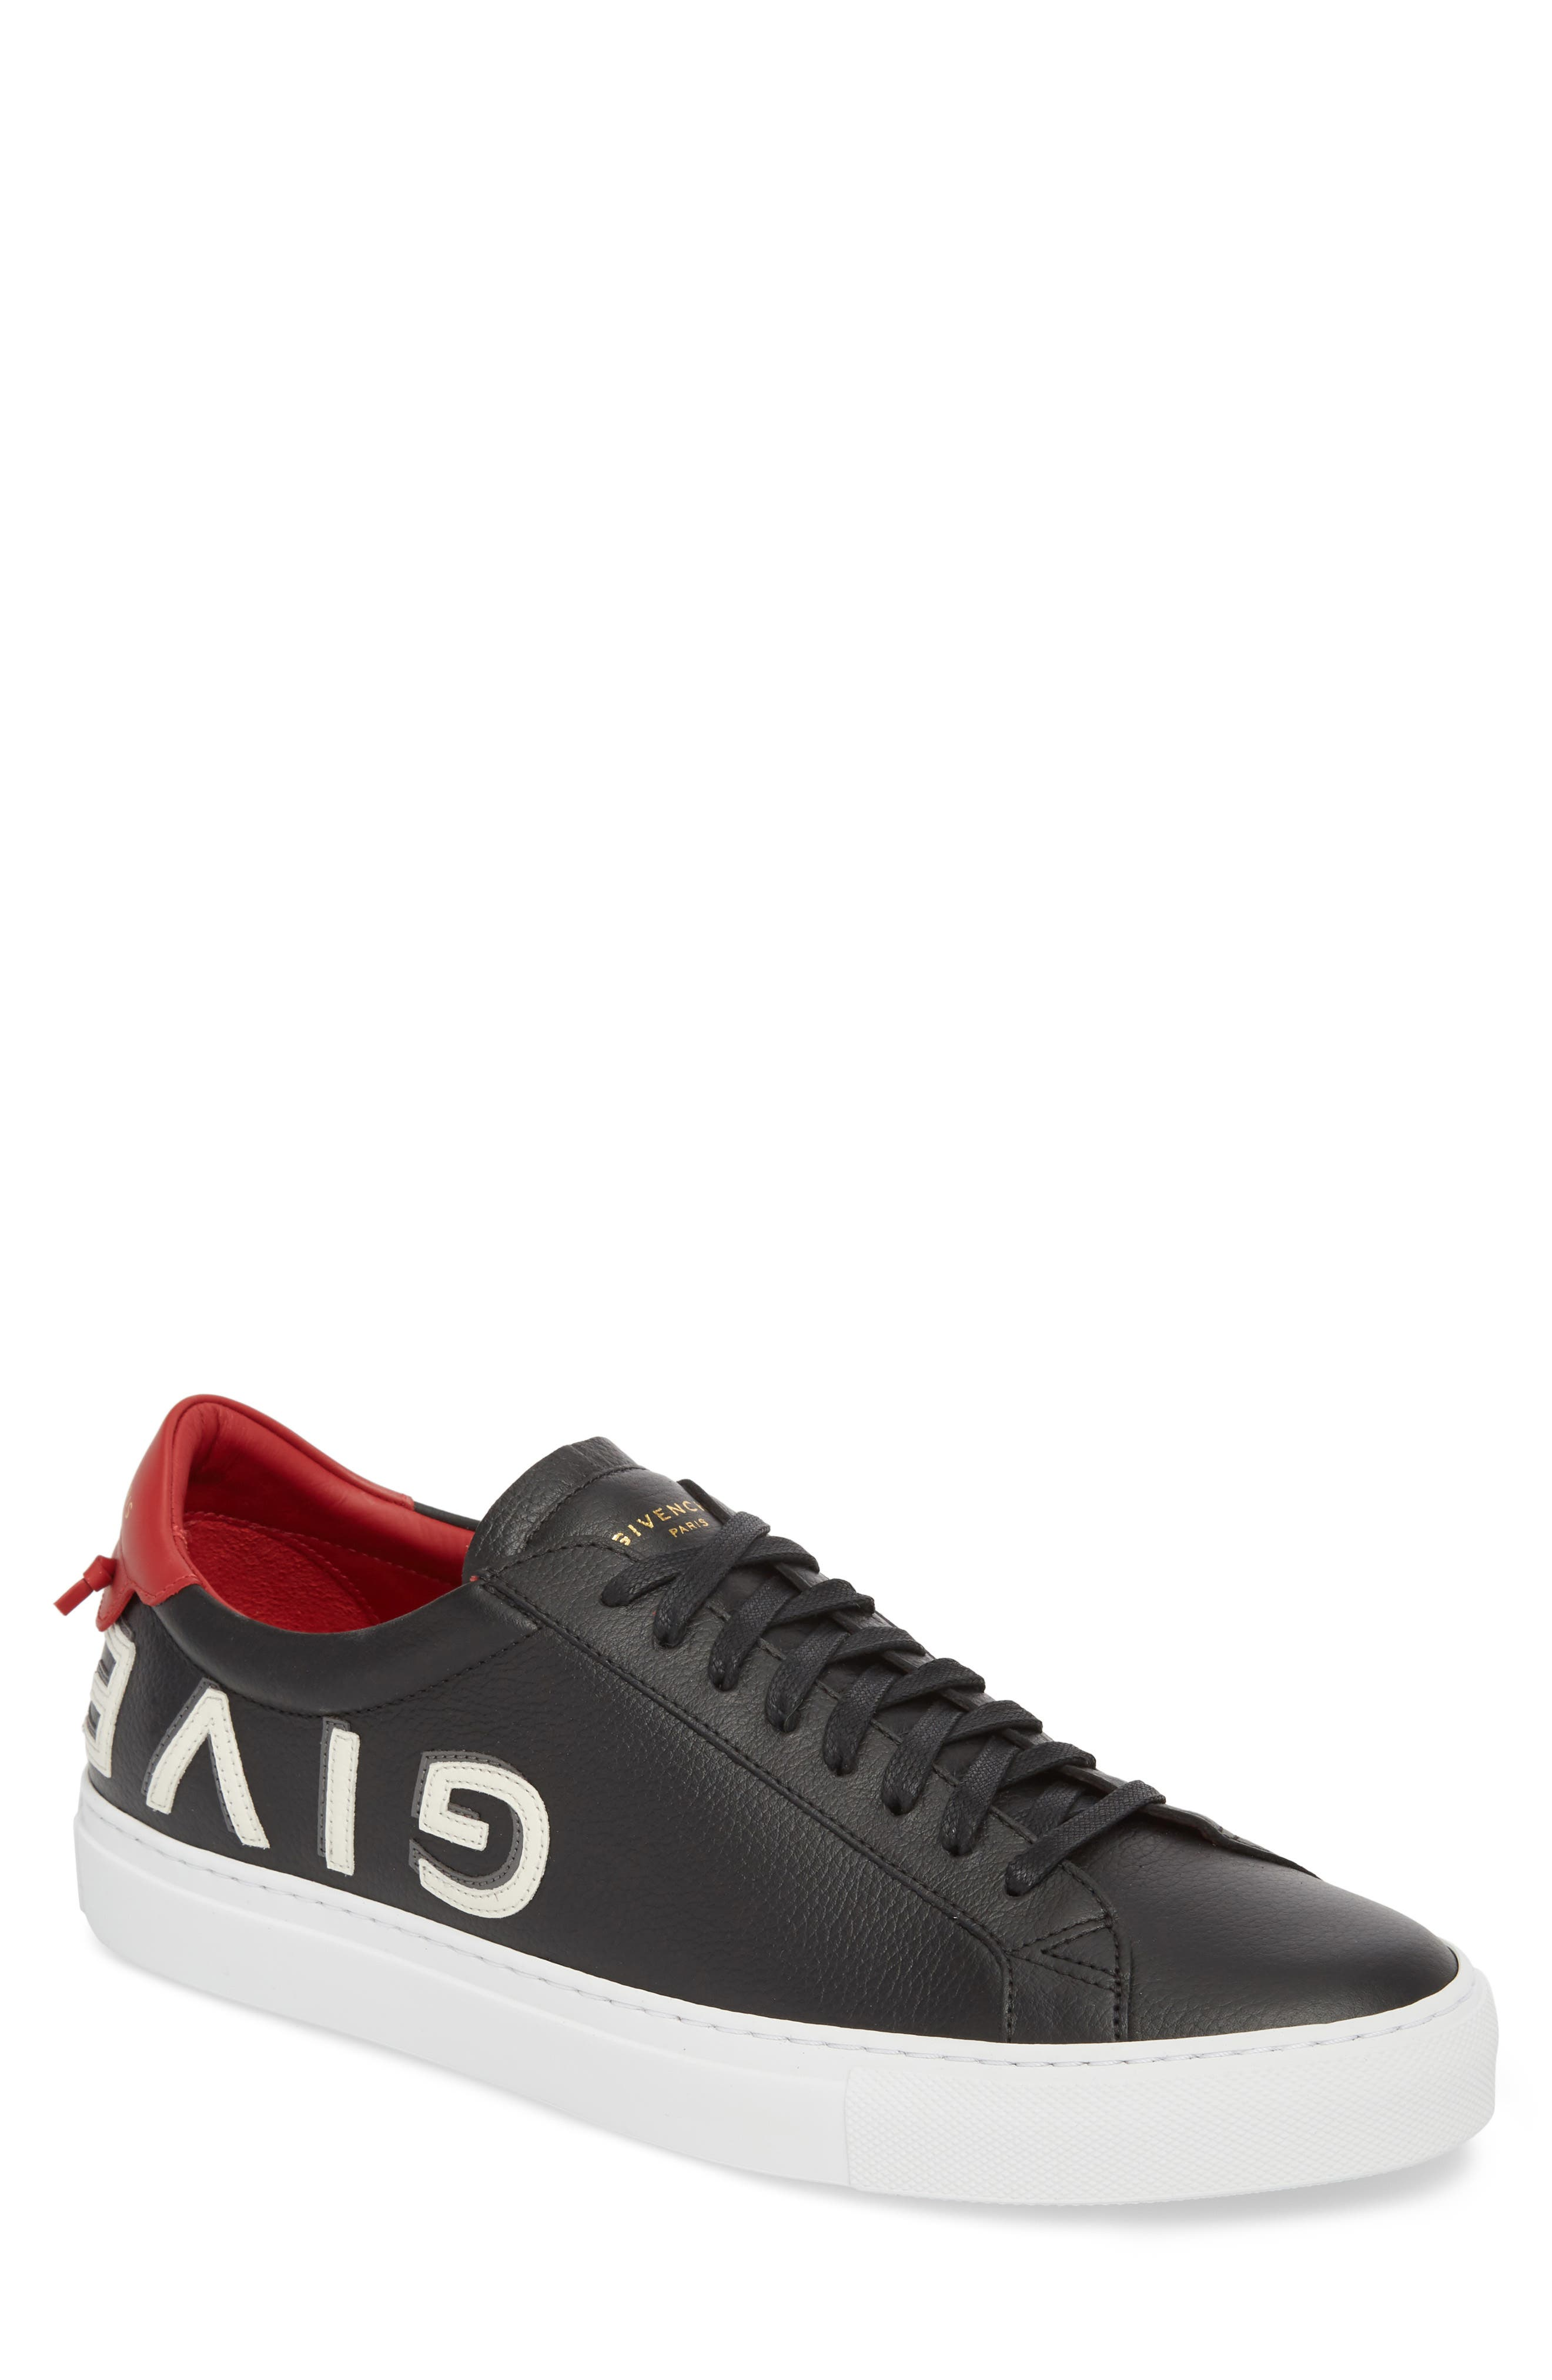 Urban Street Upside Down Sneaker, Main, color, 009